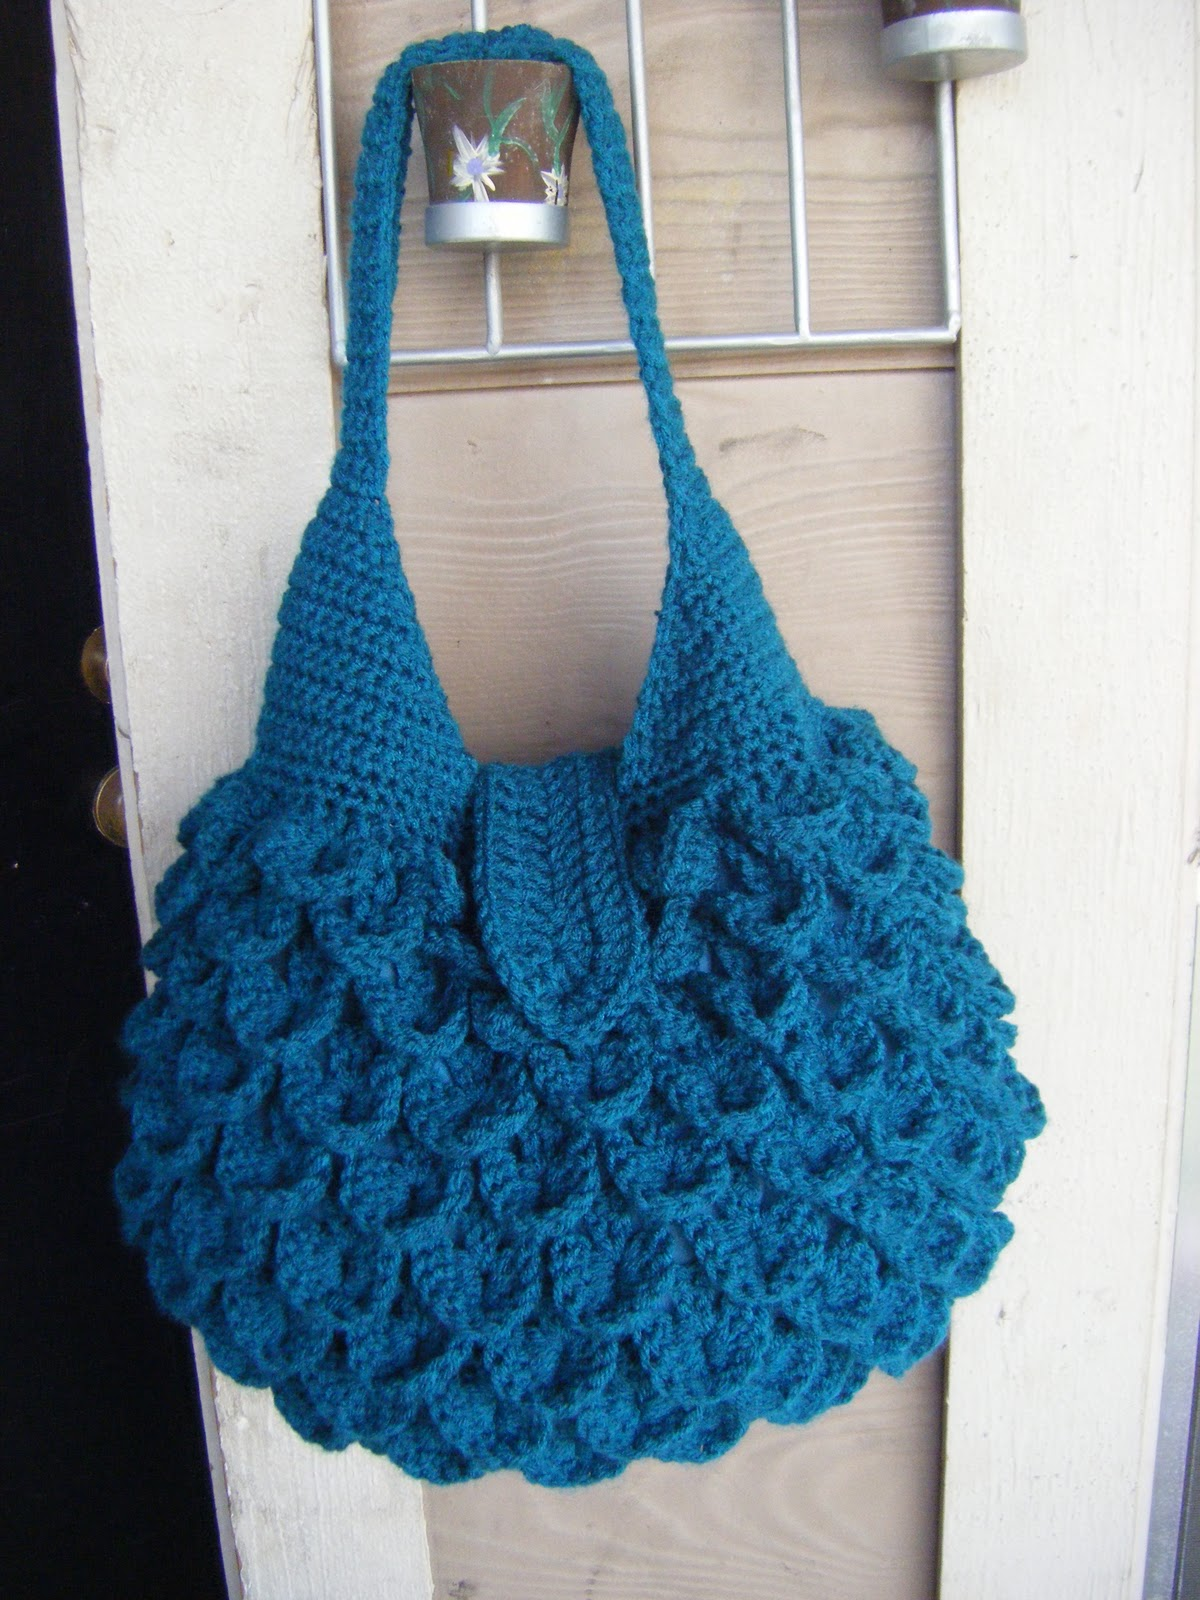 Crochet Bag Making : Best Patterns: Crocodile Crochet Bag PATTERN